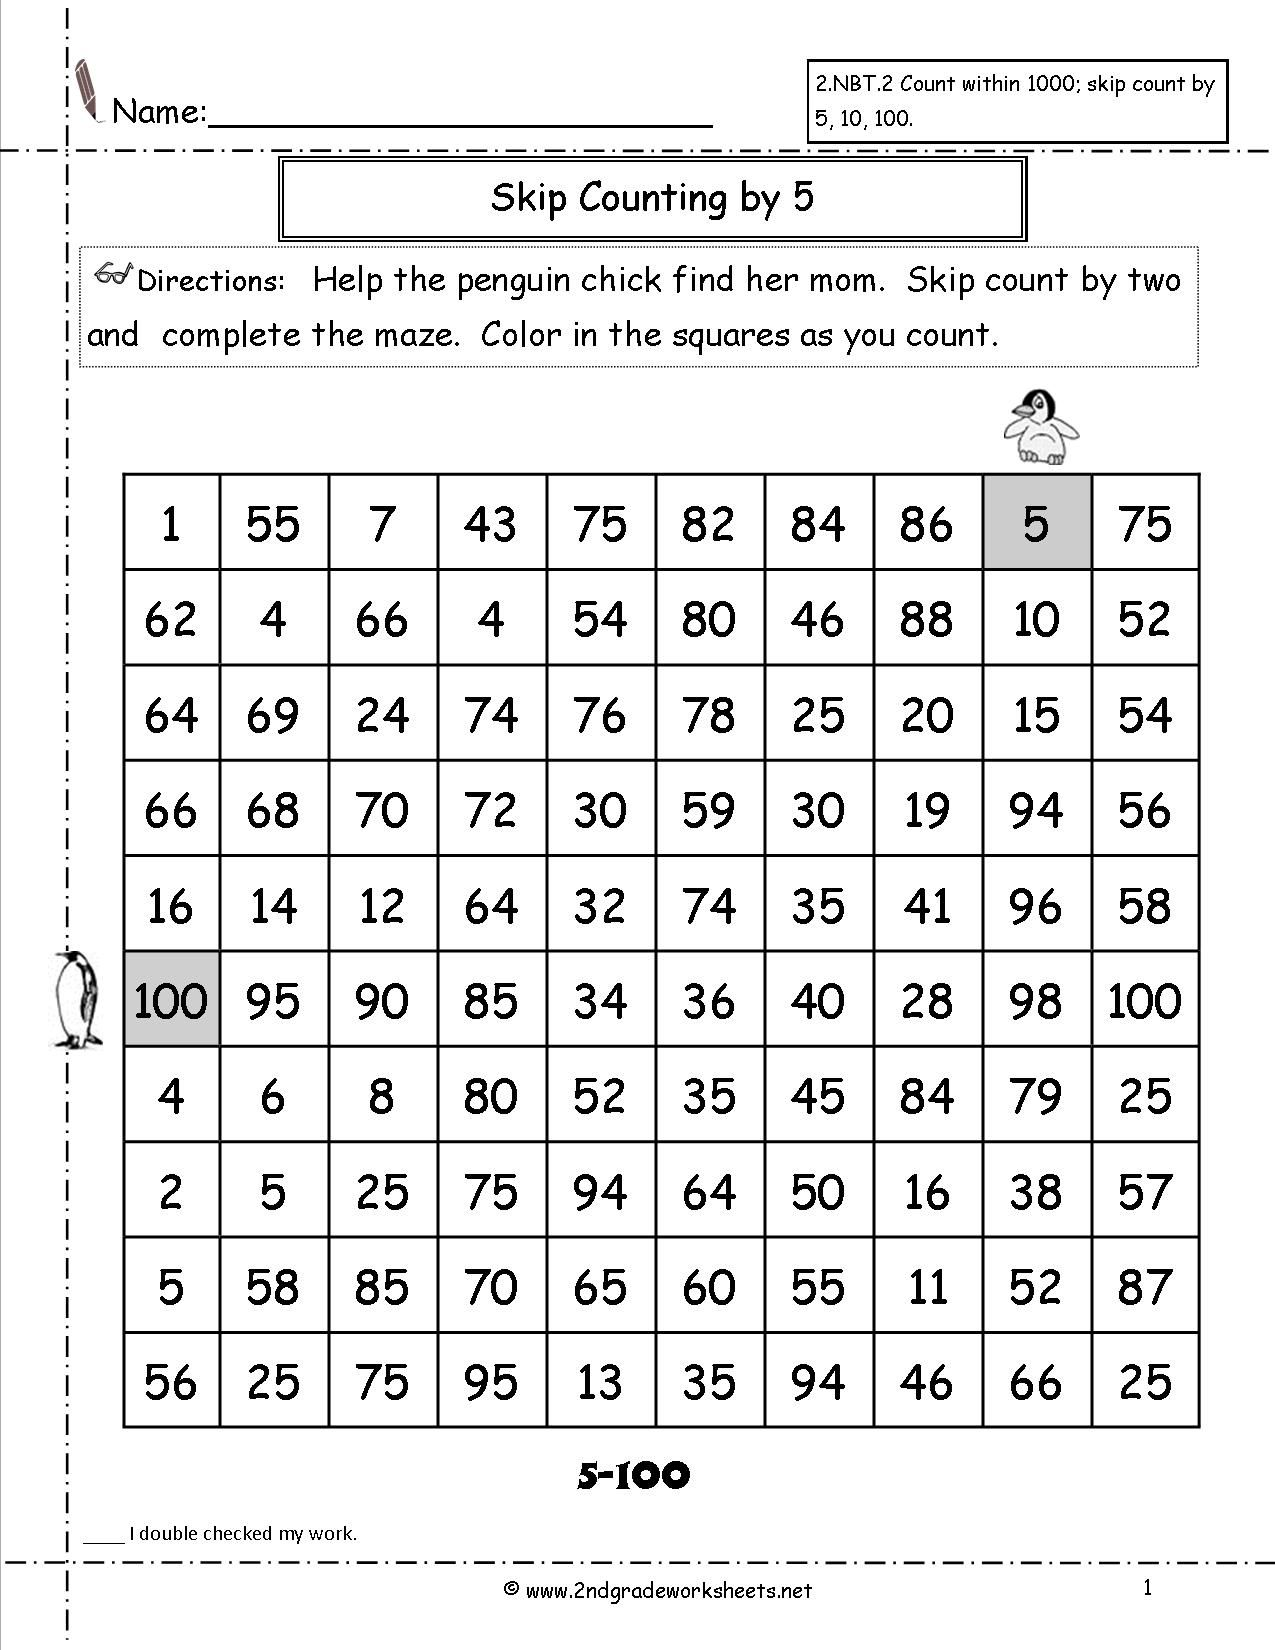 Skip Counting By 2 And 5 Worksheets